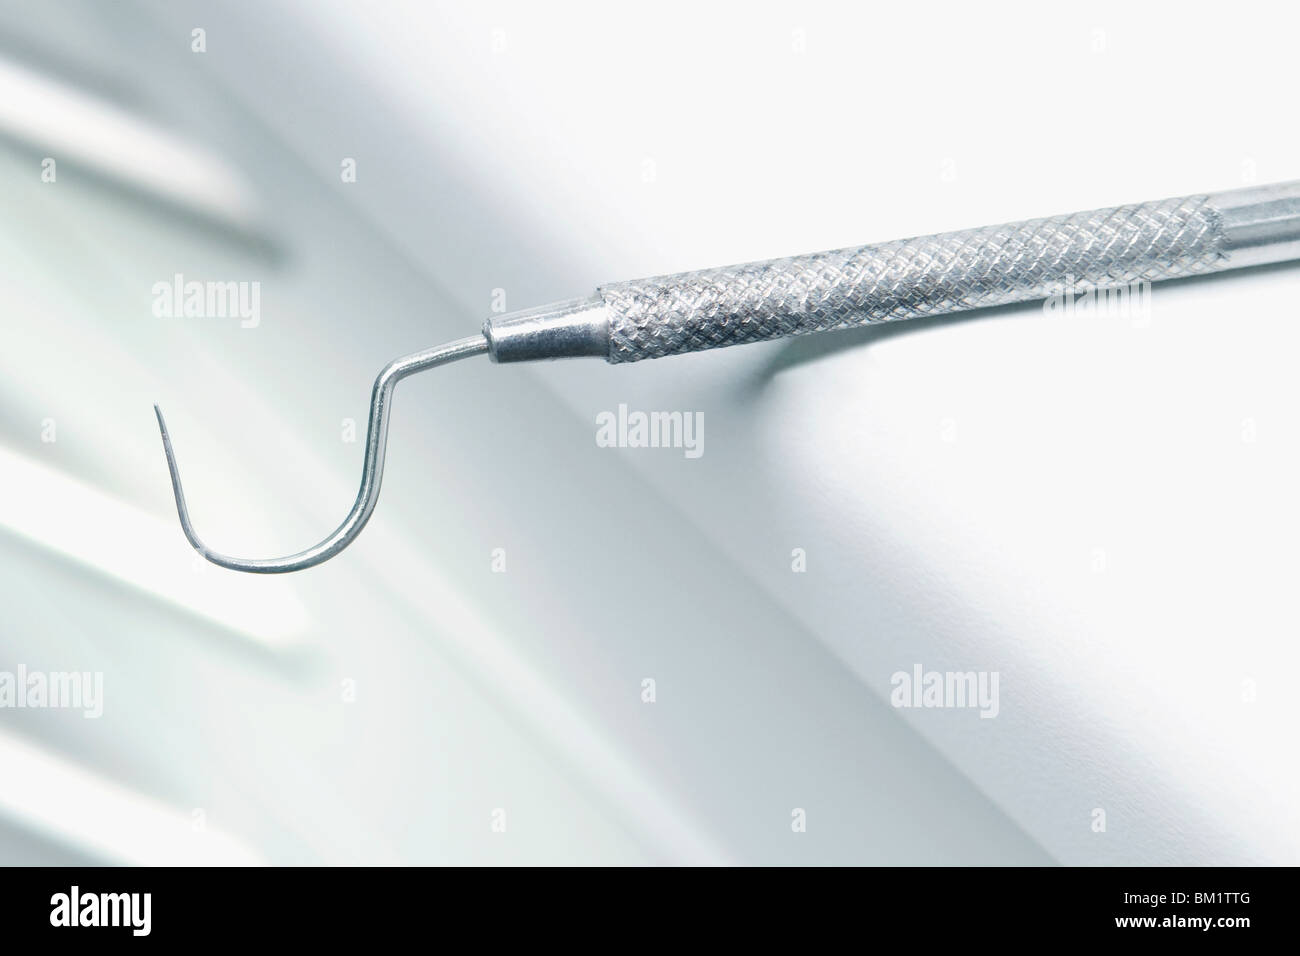 Close-up of a dental scaler in an examination room - Stock Image